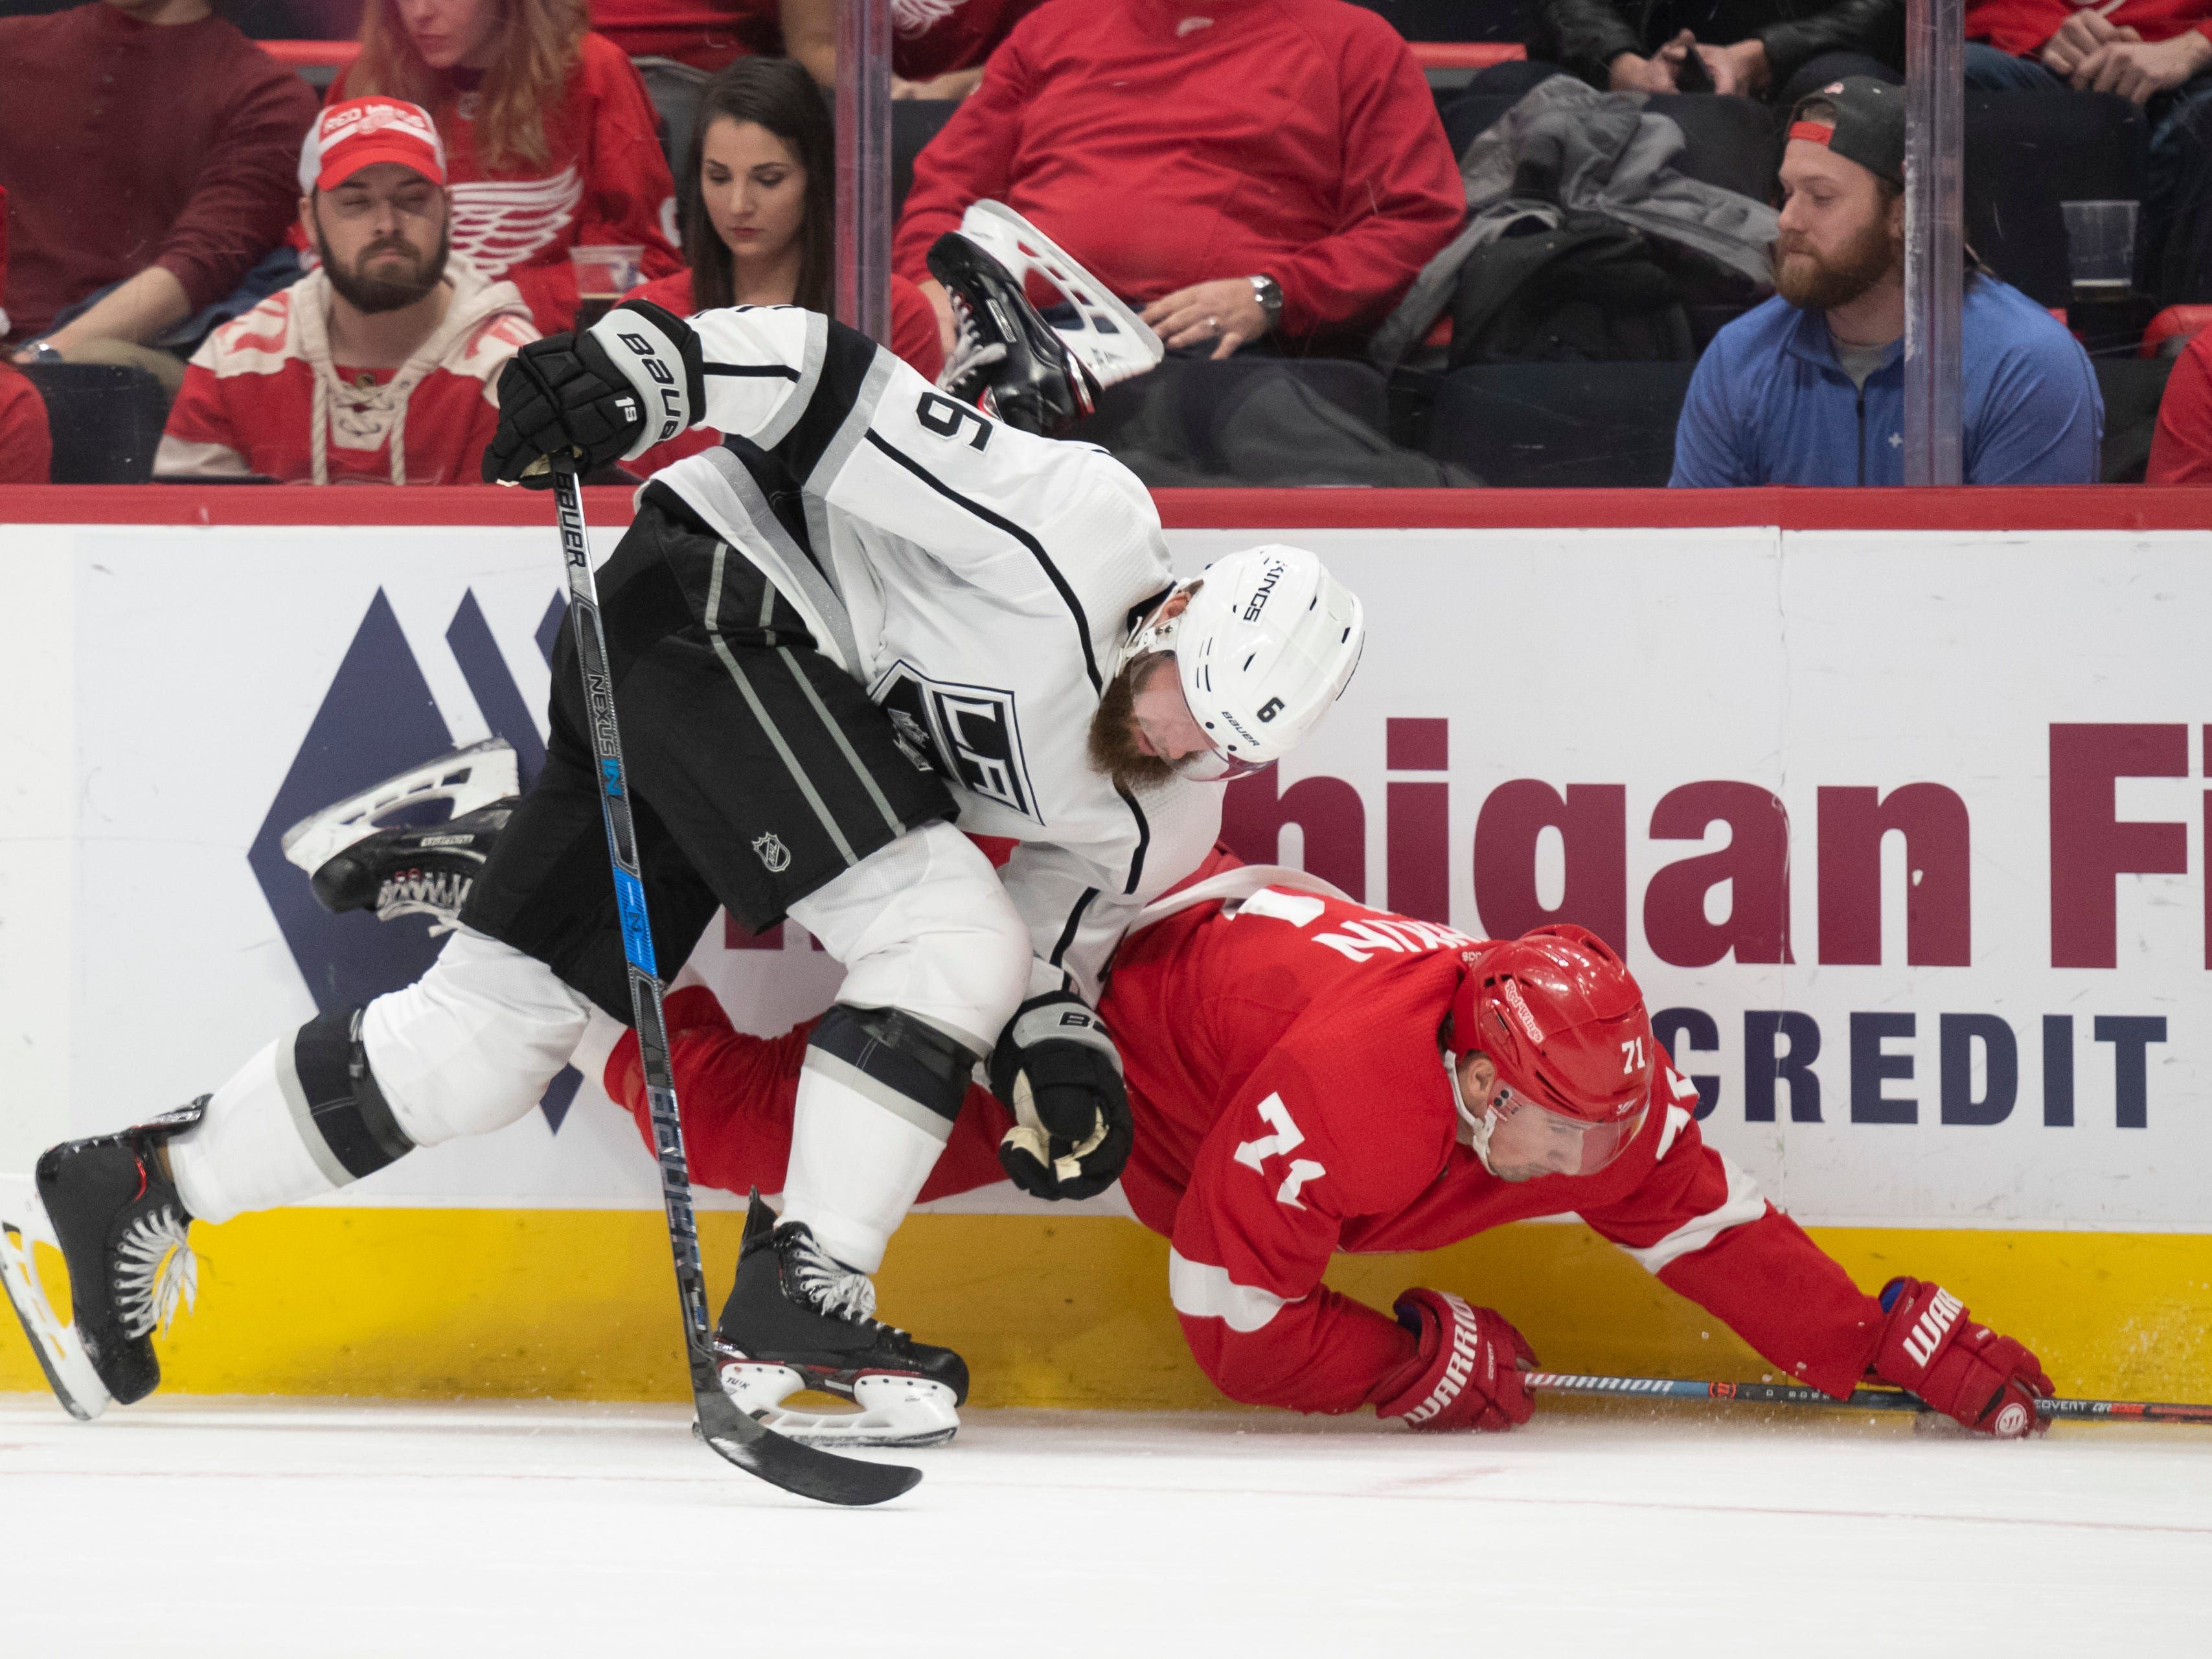 Detroit center Dylan Larkin and Los Angeles defenseman Jake Muzzin collide along the boards in the first period.